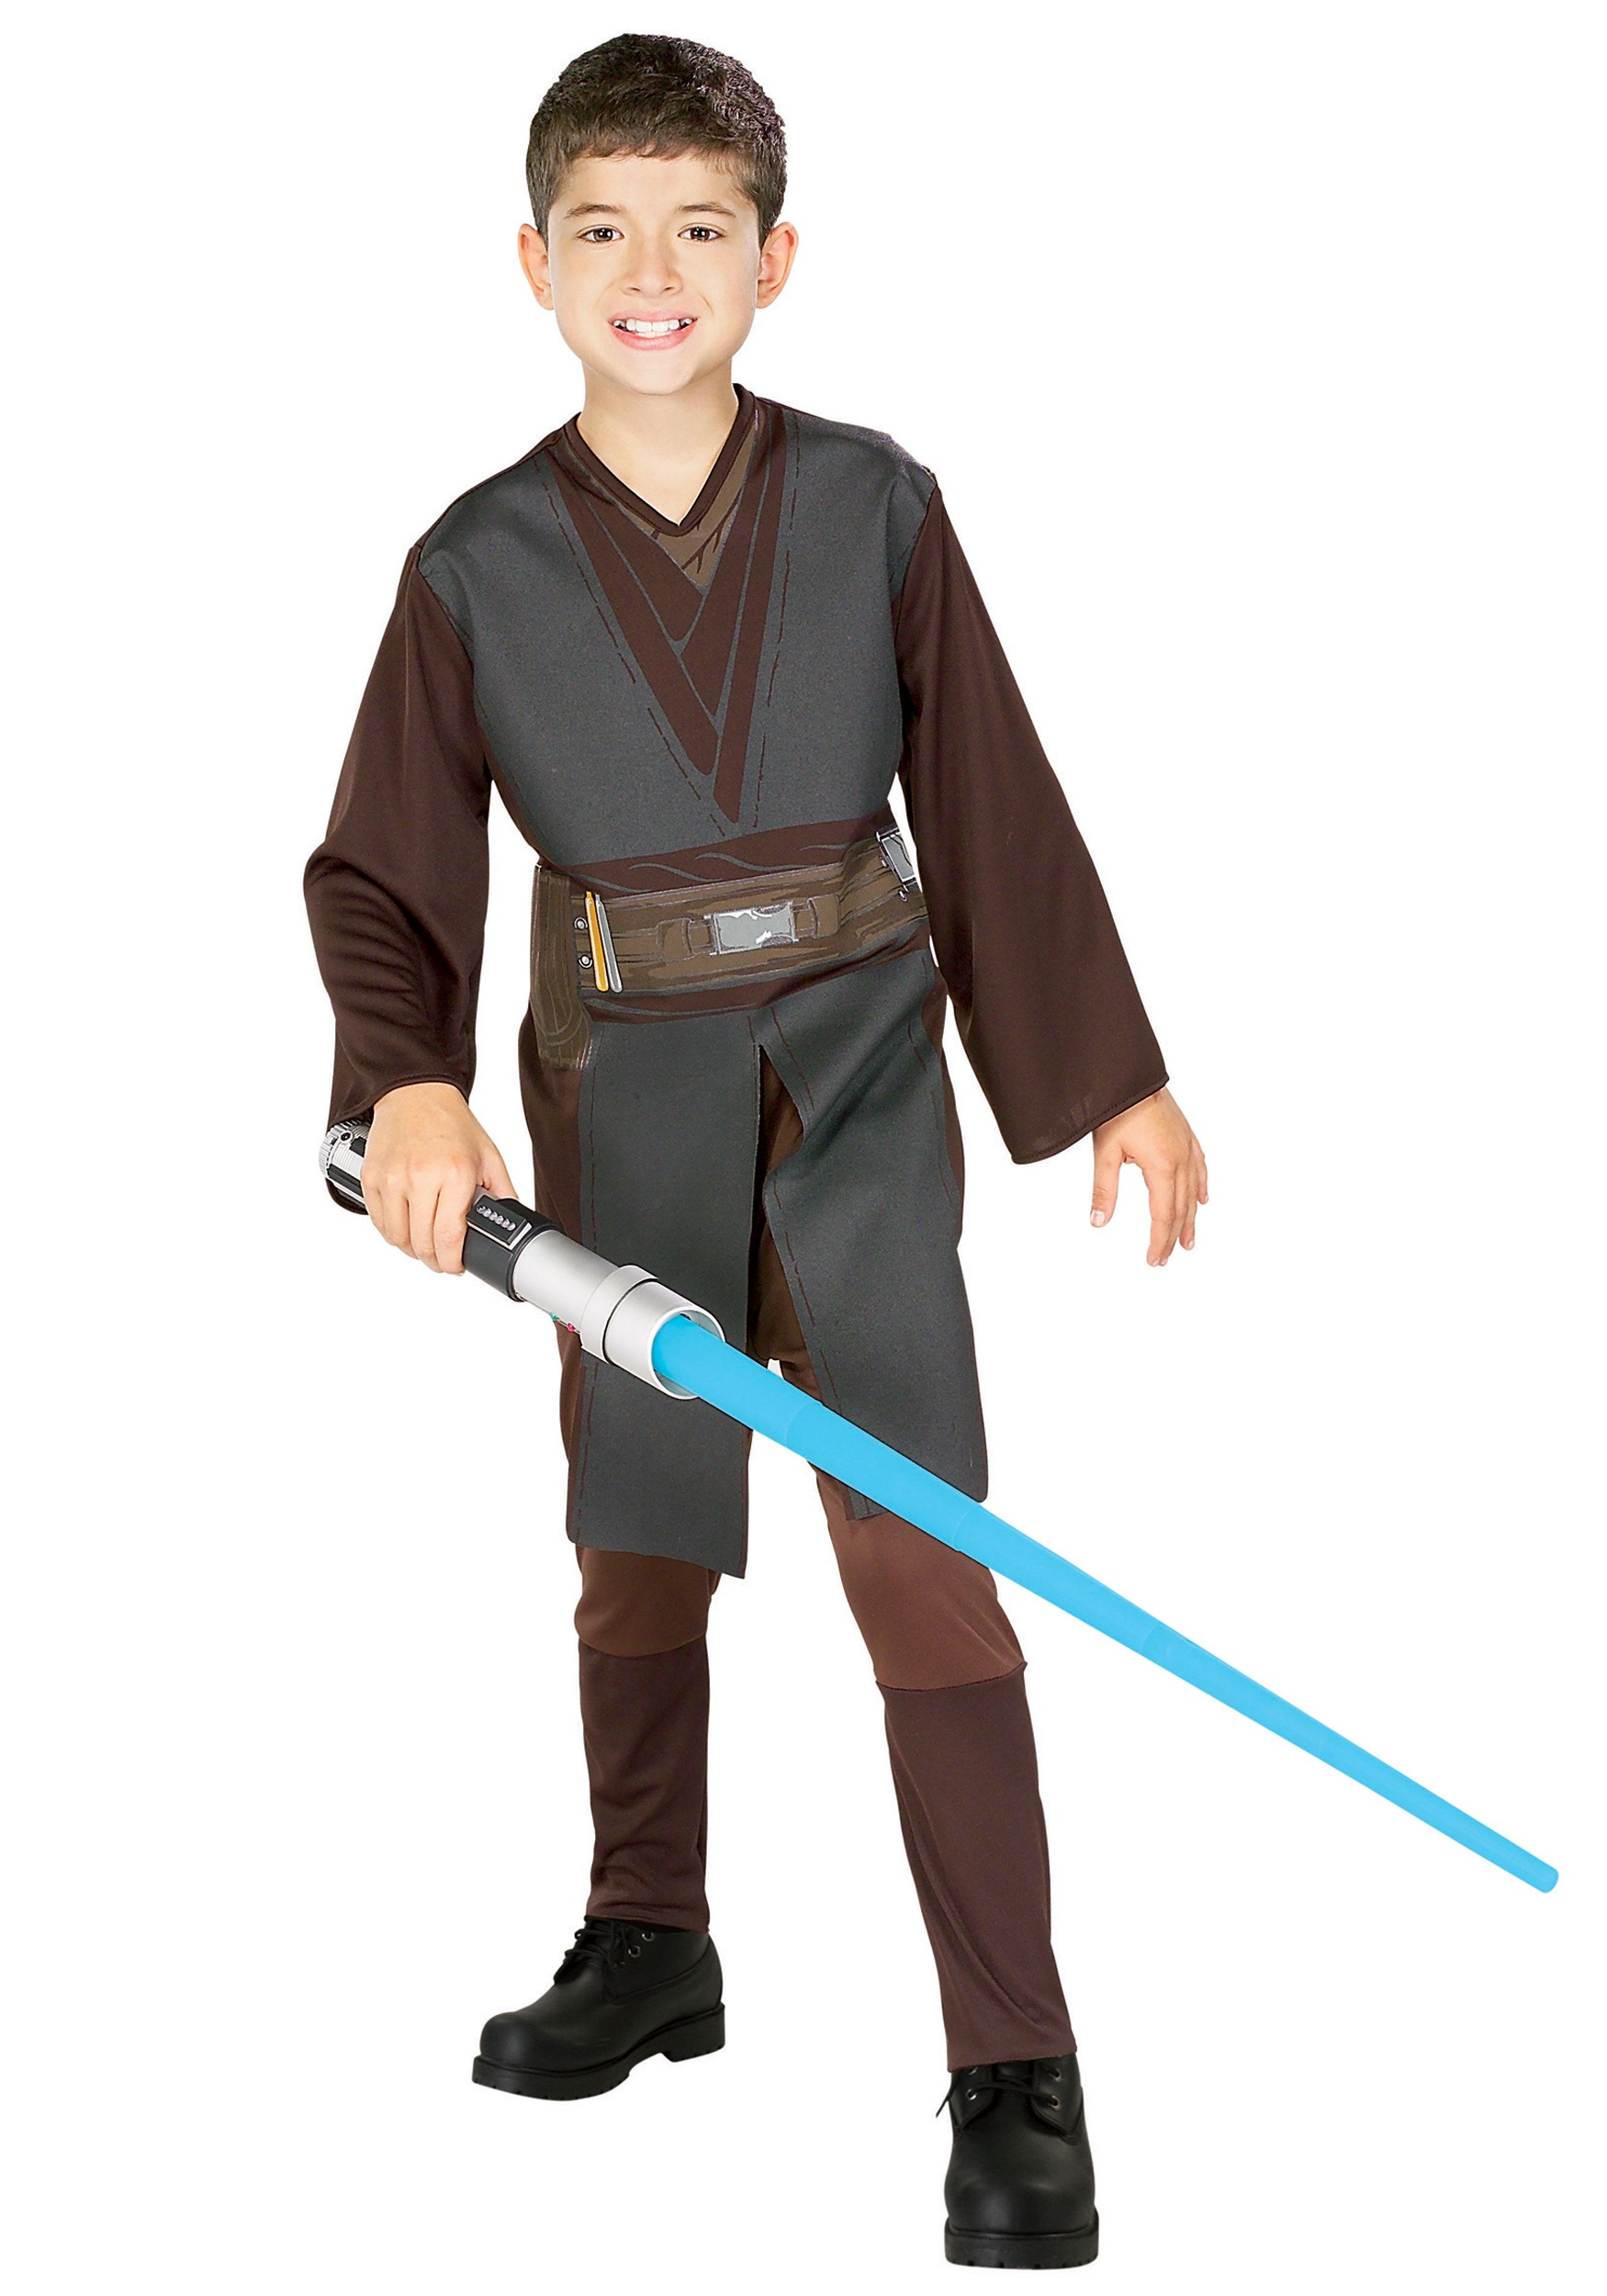 Child Anakin Skywalker Costume  sc 1 st  Buy Star Wars Costumes & Child Anakin Skywalker Costume - Kids Episode III Anakin Costume